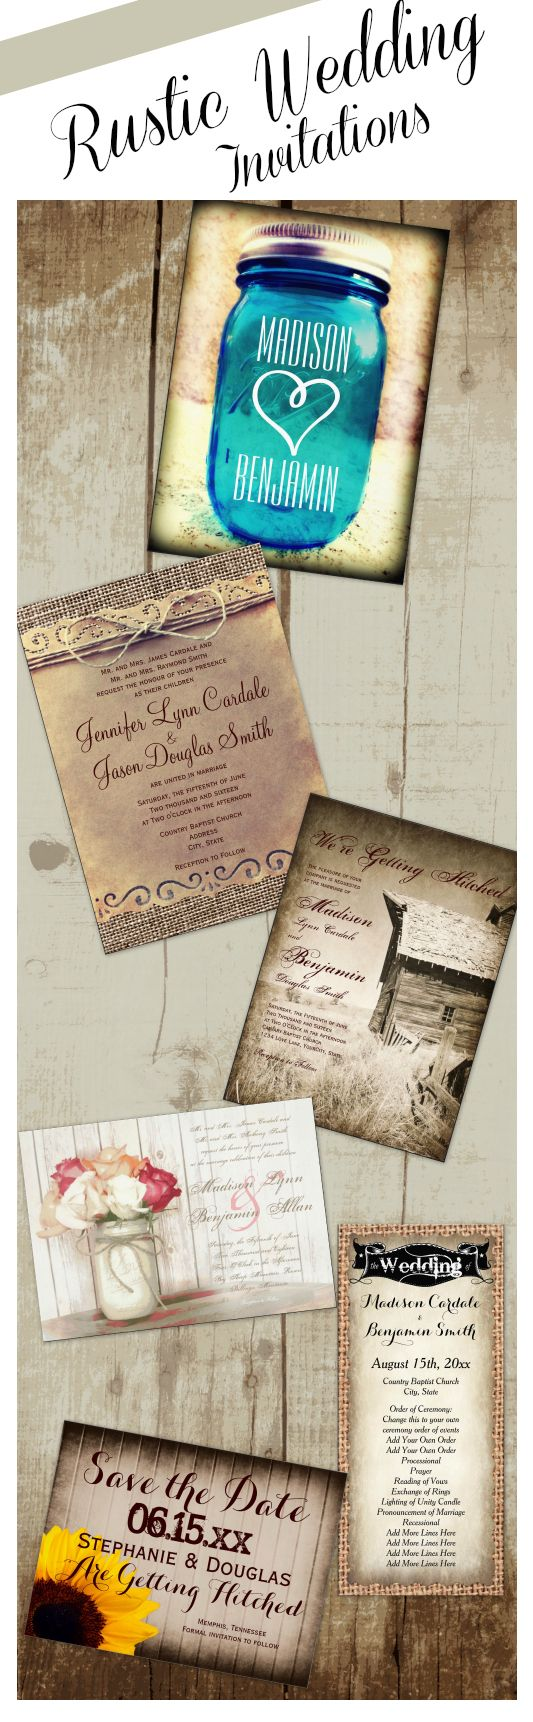 rustic wedding invitations cheap rustic wedding invitations for a country style wedding 7221